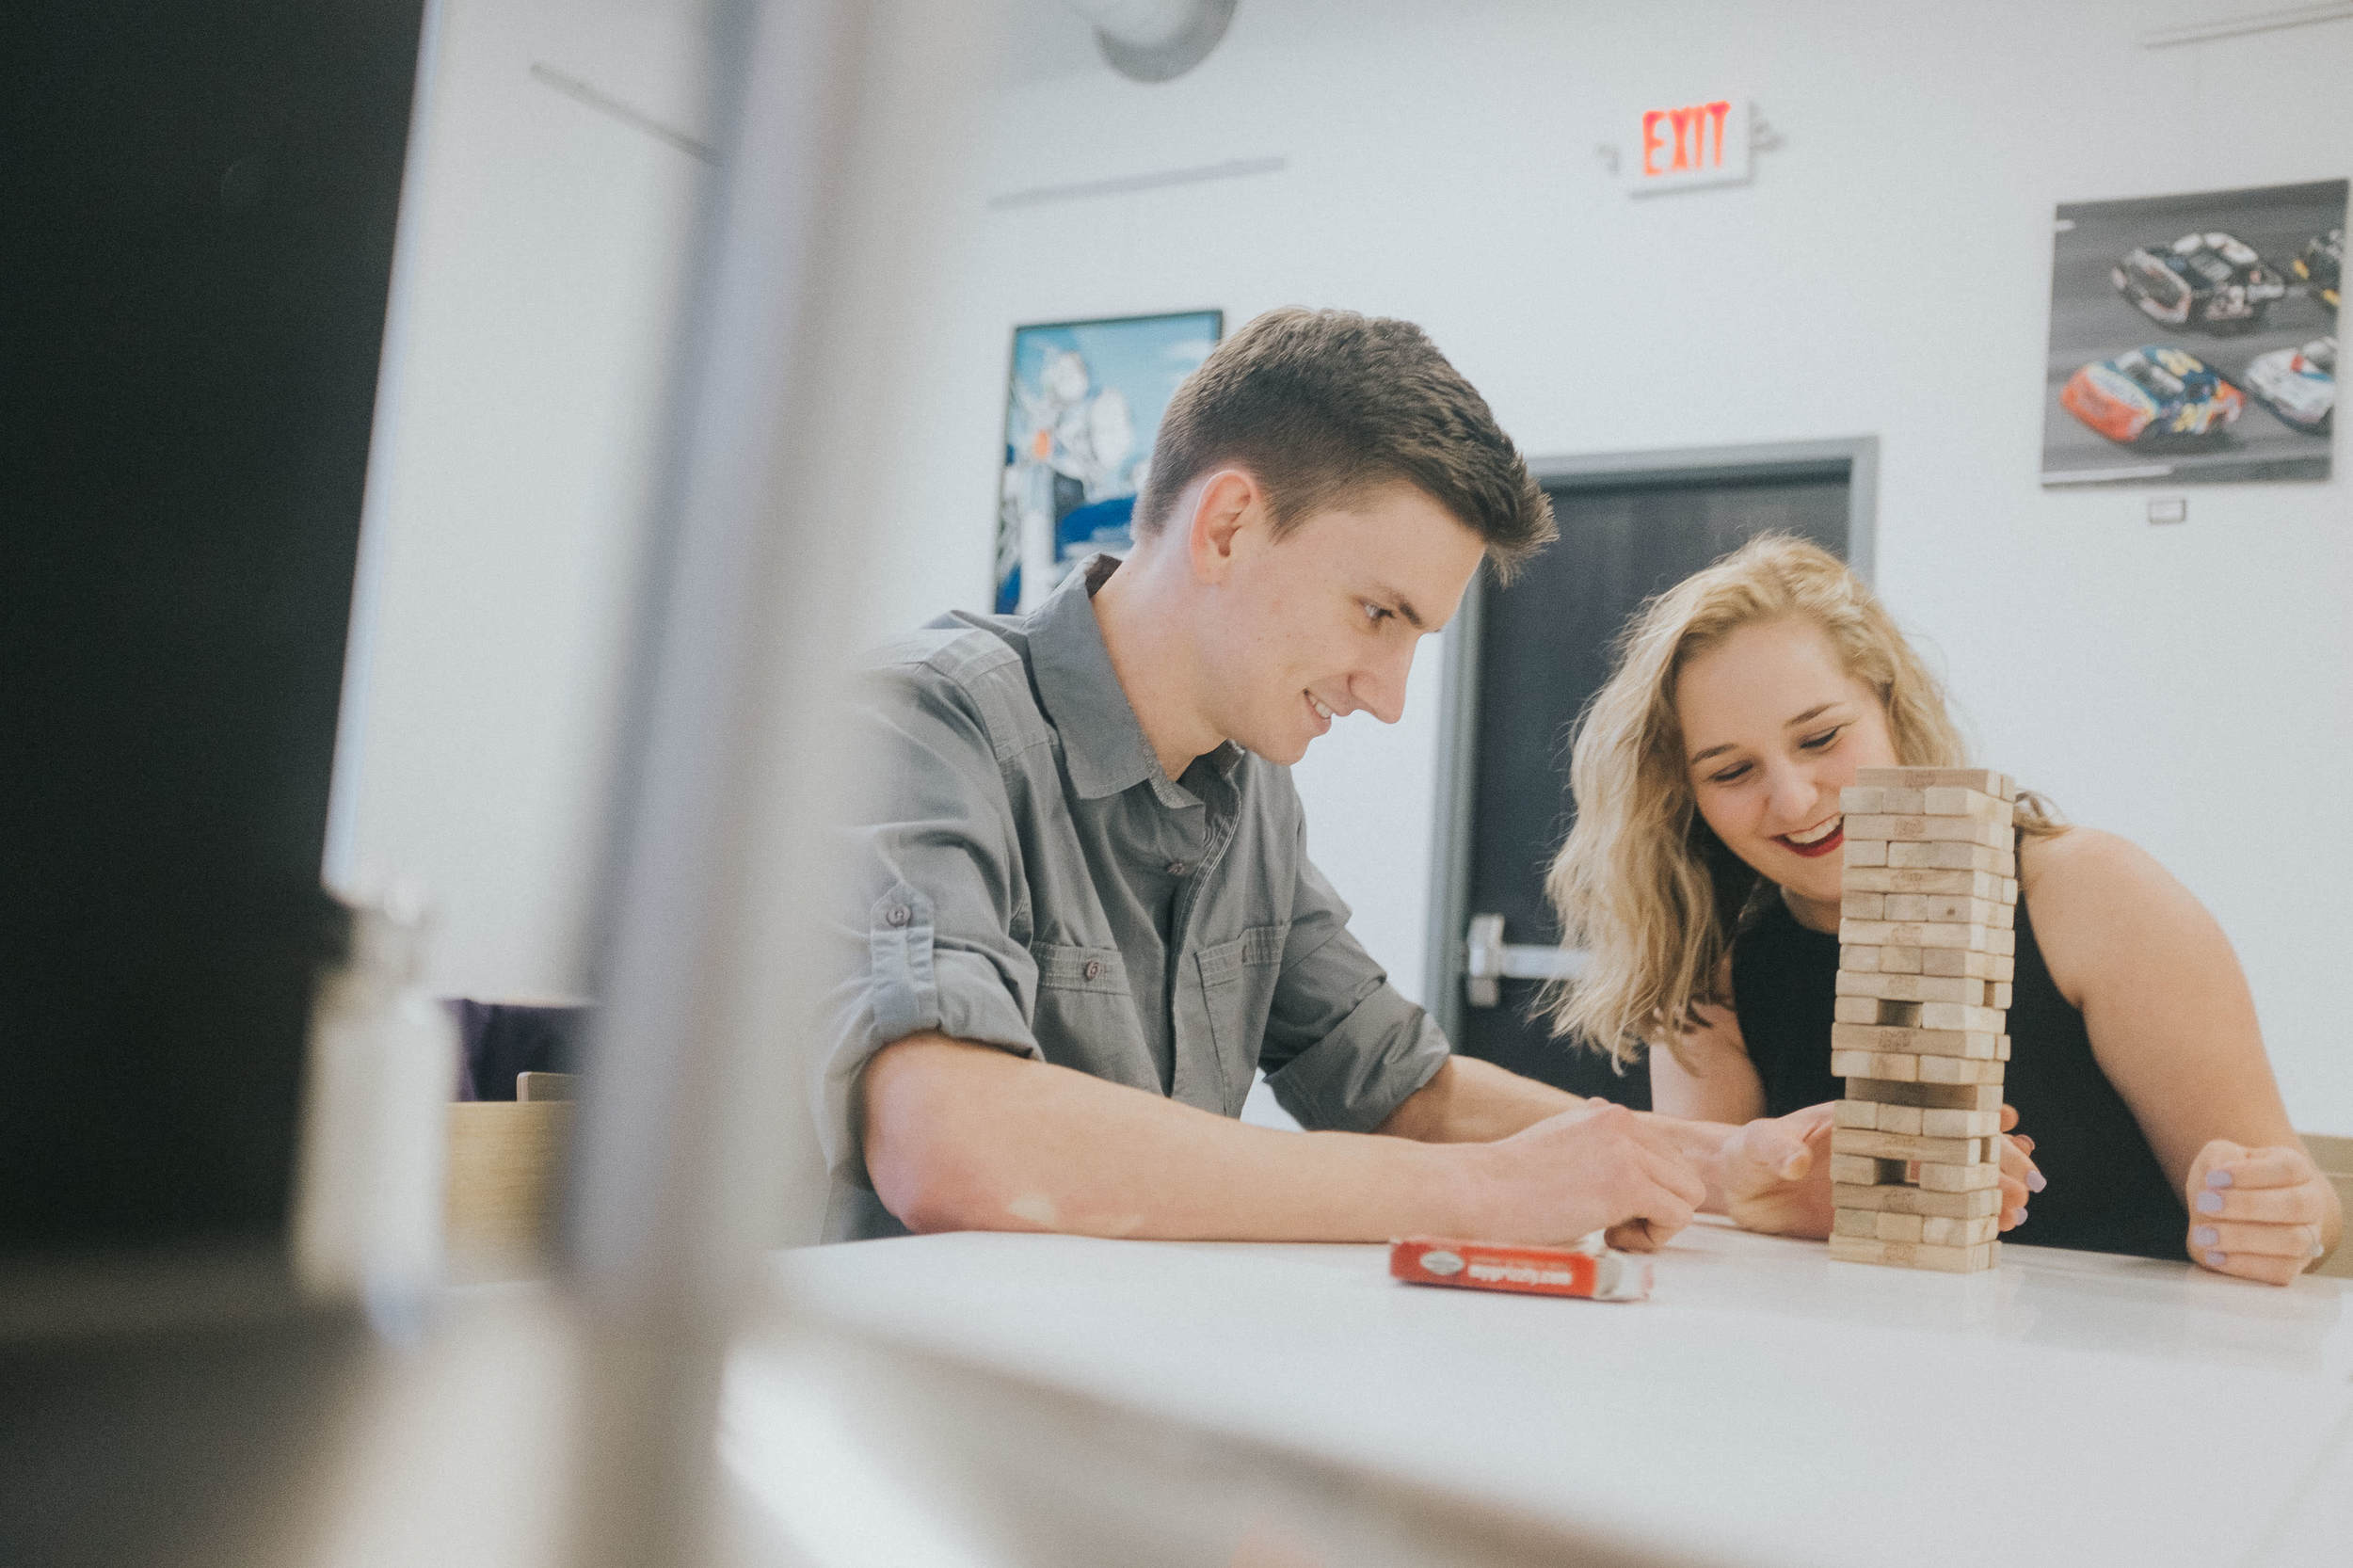 couple-laughing-playing-table-games